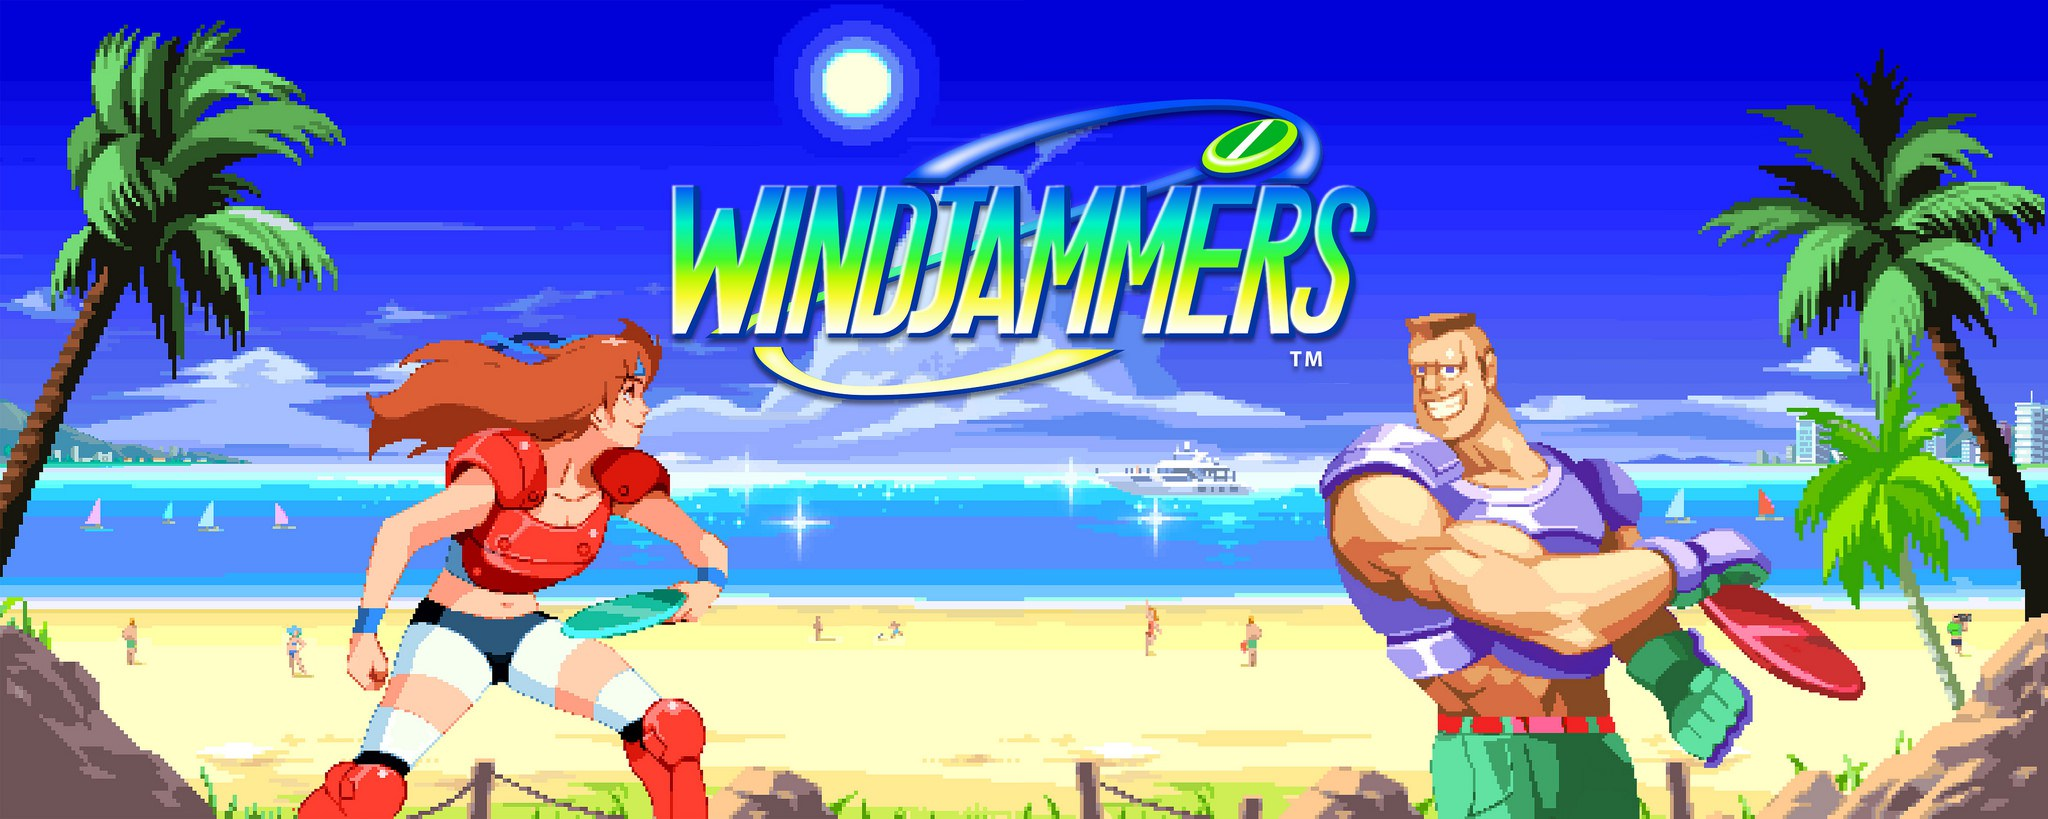 Windjammers is now available on Nintendo Switch!